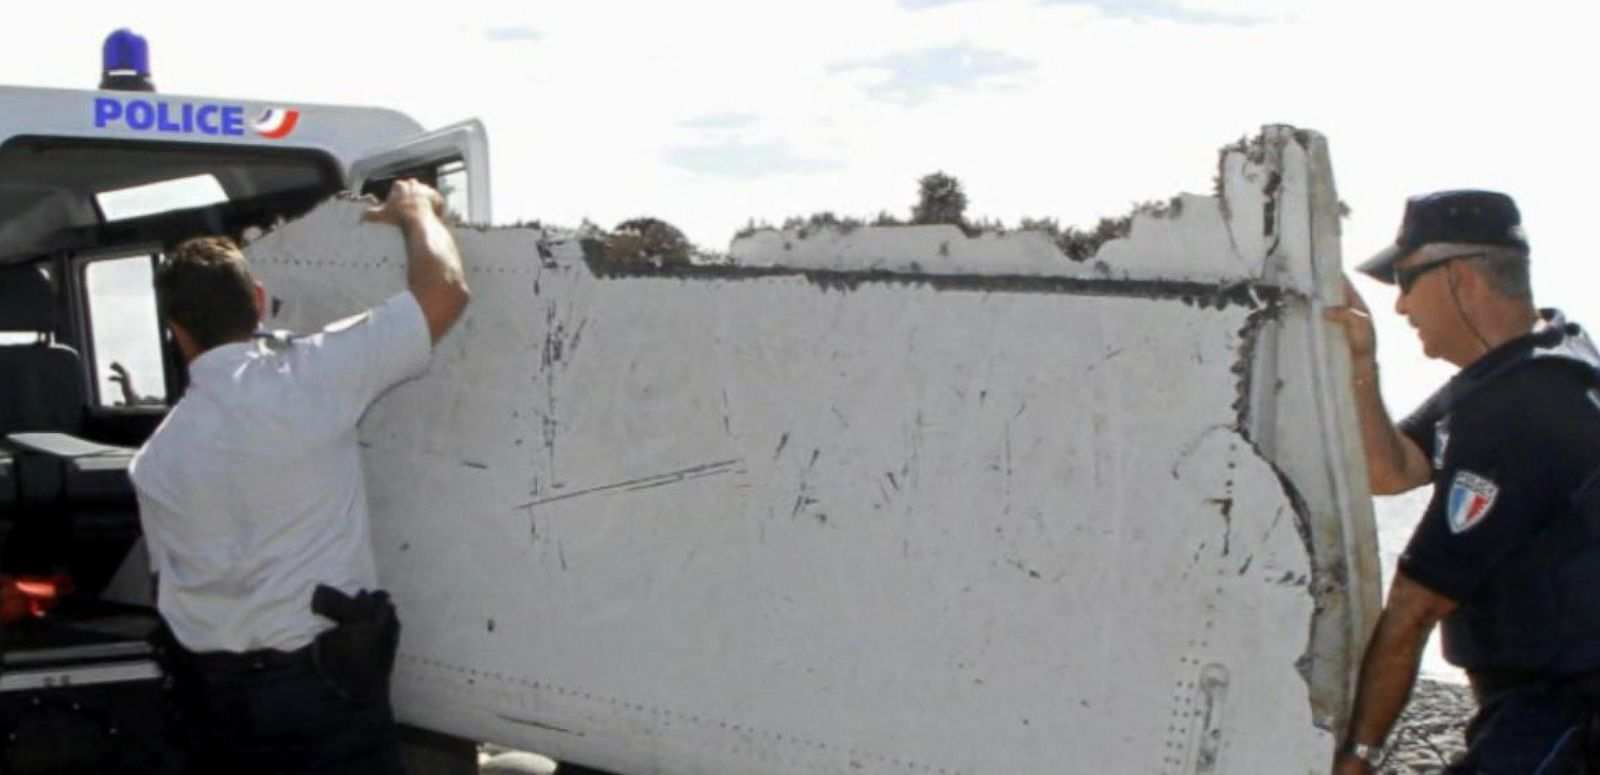 VIDEO: Possible MH370 Flight Debris Arrives in France for Analysis